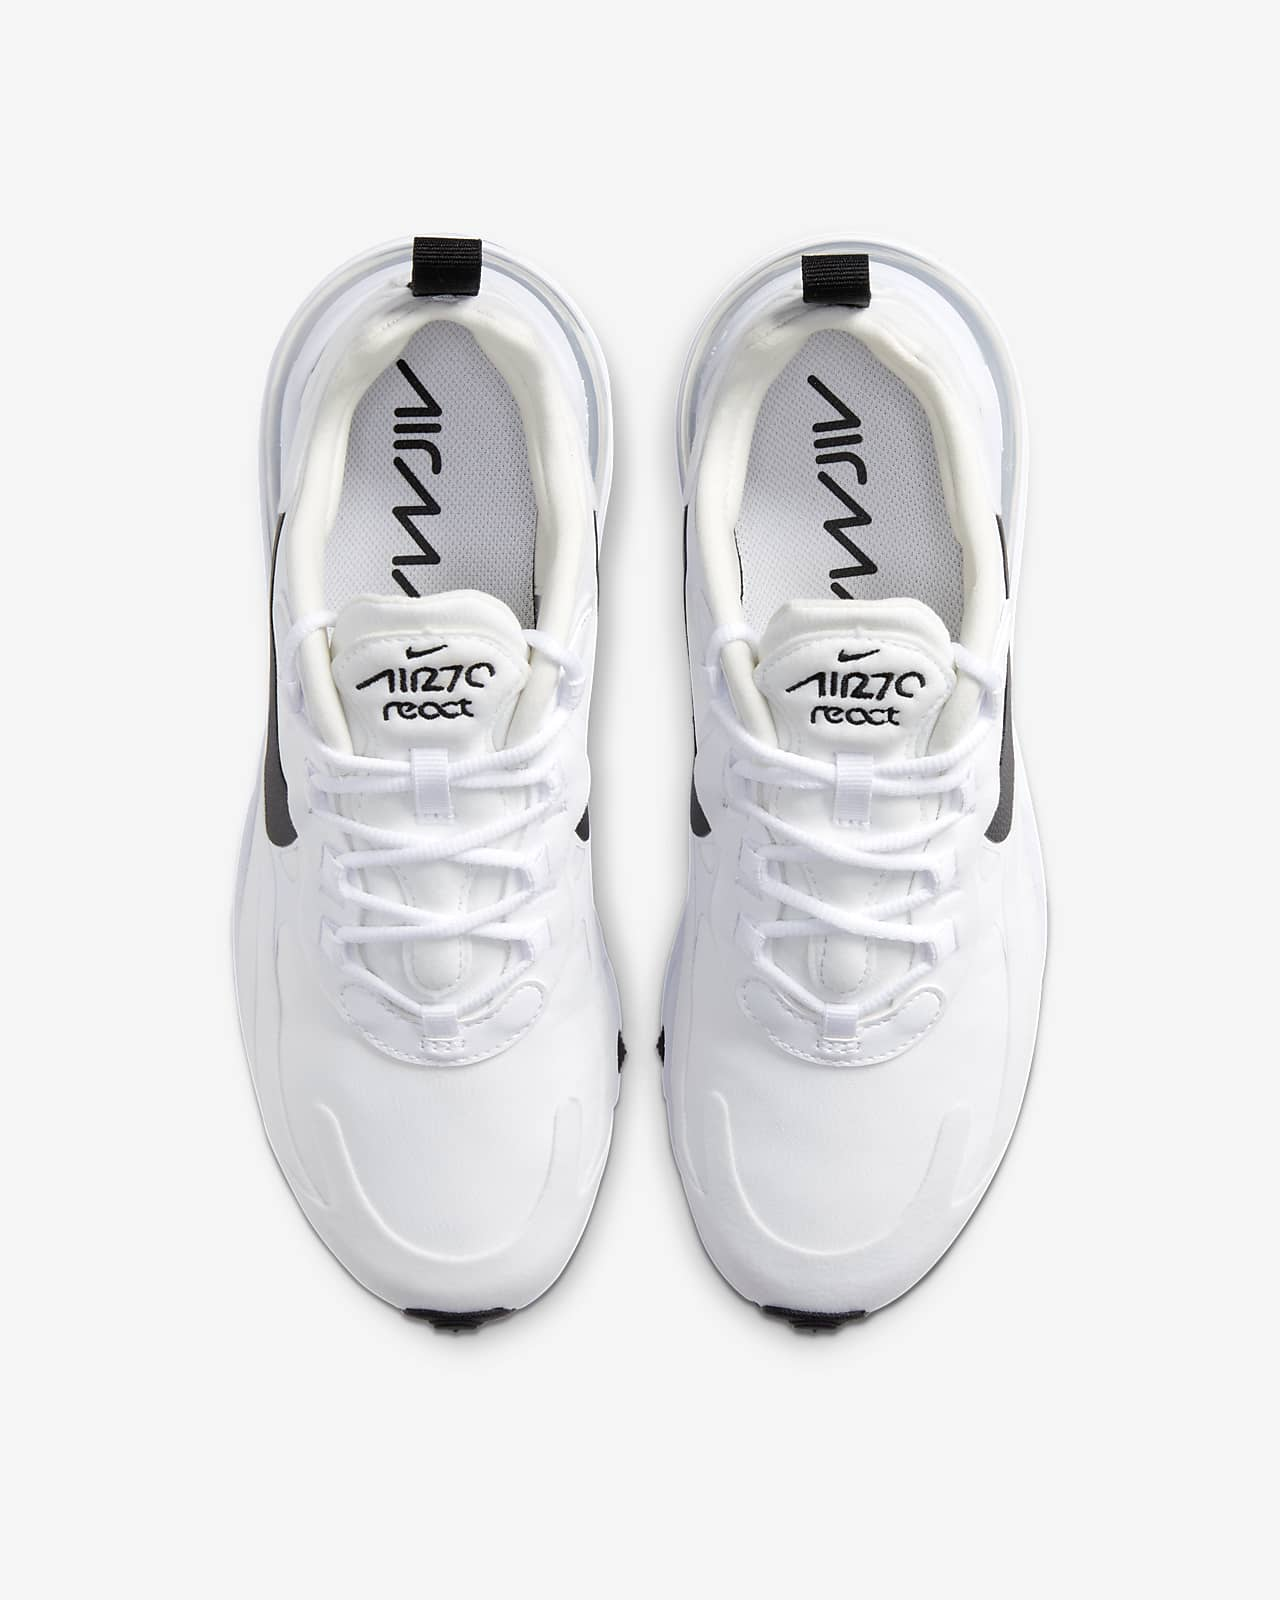 Women's Nike Air Max 270 React Shoes.    UK6 US8.5 EUR40  CI3899-101